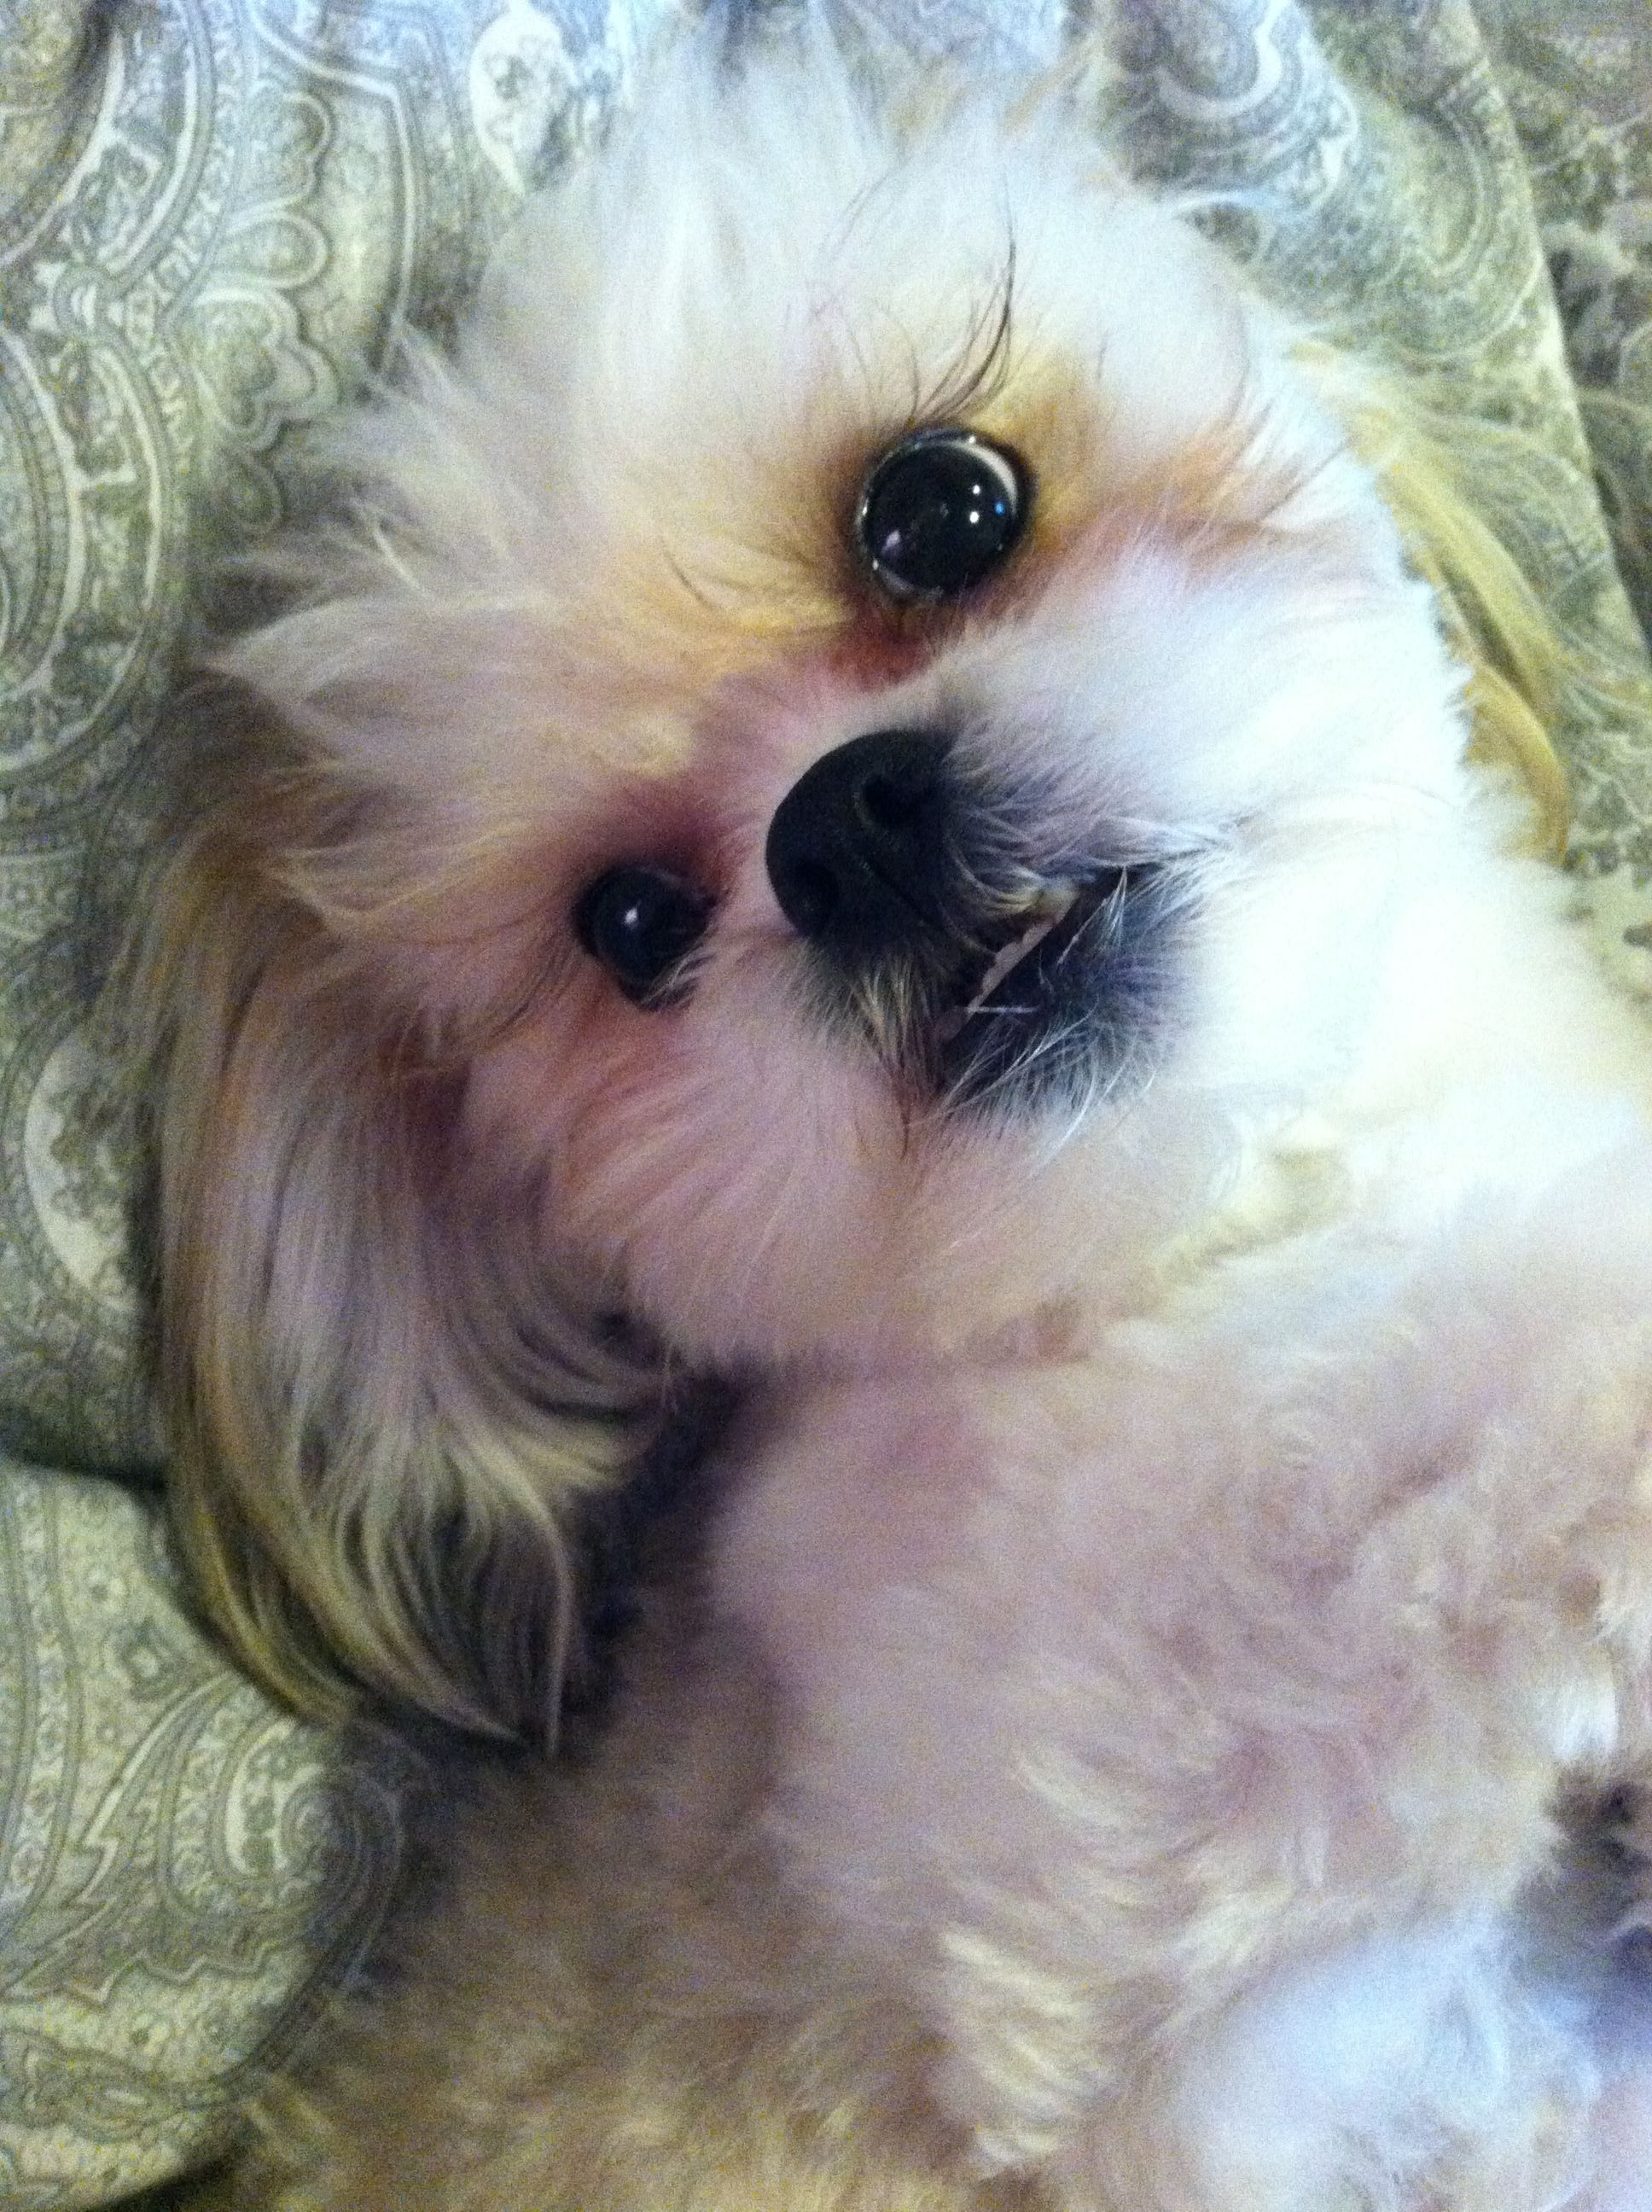 Shichon puppies for sale in kentucky - Ollie The Shih Tzu And Bichon Frise Mix Also Known As A Shichon Early